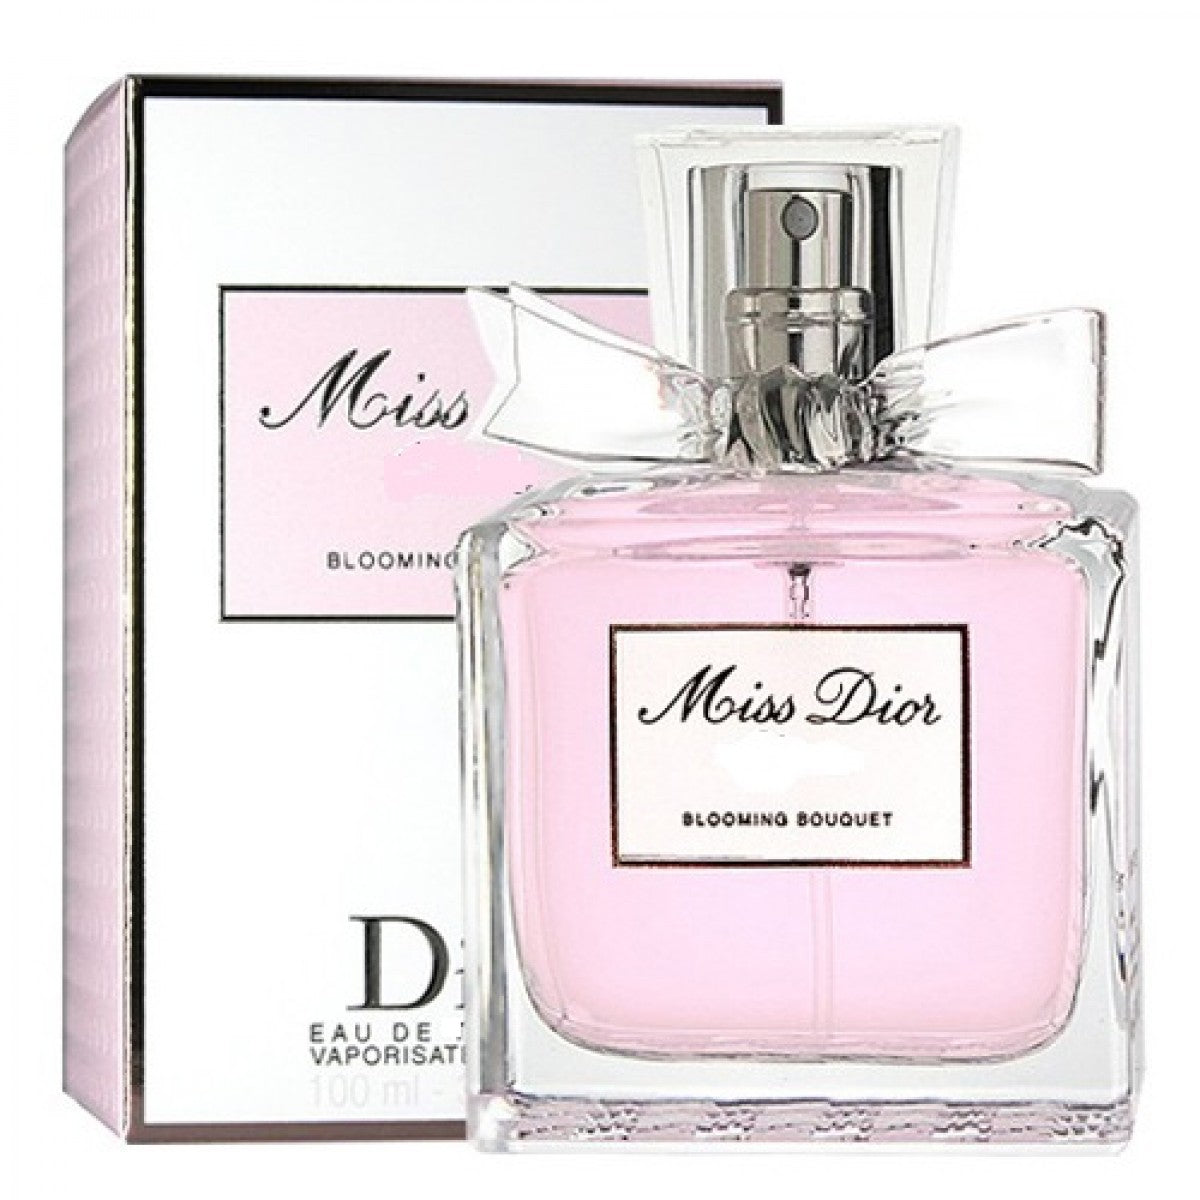 7075dd02a5a2 Christian Dior Miss Dior Absolutely Blooming Bouquet EDP 100ml Perfume For  Women - MyPerfumeShopNG